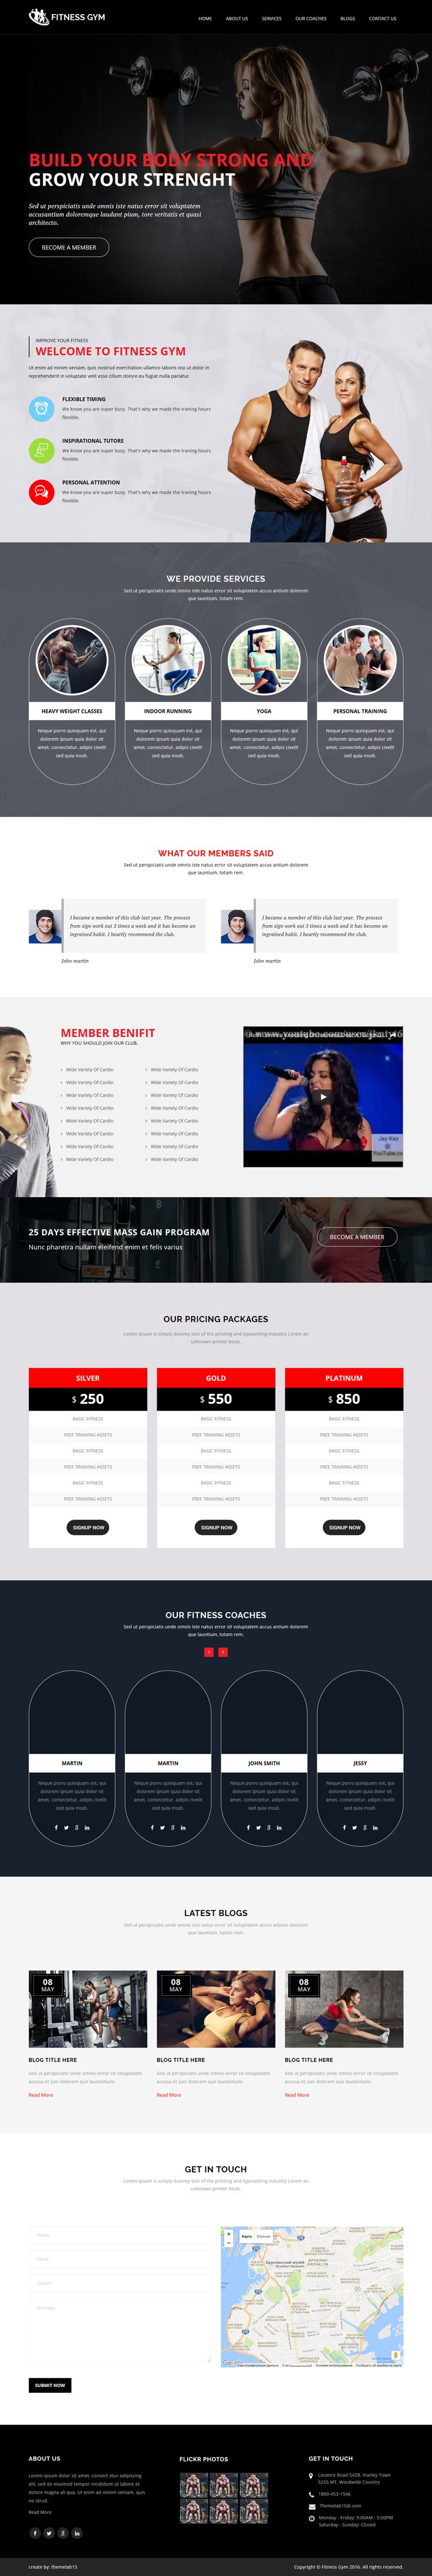 Fitness Gym One Page Responsive HTML5 Template. Live Preview & Download: https://themeforest.net/item/fitness-gym-one-page-responsive-html5-template/15819058?ref=ksioks